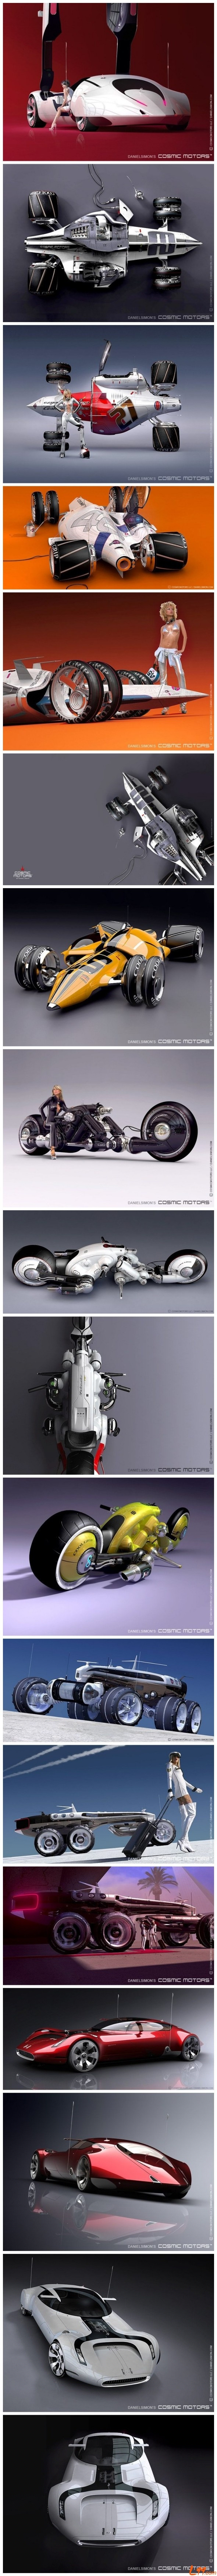 Picked up by CGchips. 2D,3DCG tutorials and 3Dprinter news site. http://cgchips.com/: 1345196327528 G9Yjt0 Jpg, Conceptcars, Future Car, Concept Vehicle, 590 7013, Automobile Designs, Concept Cars